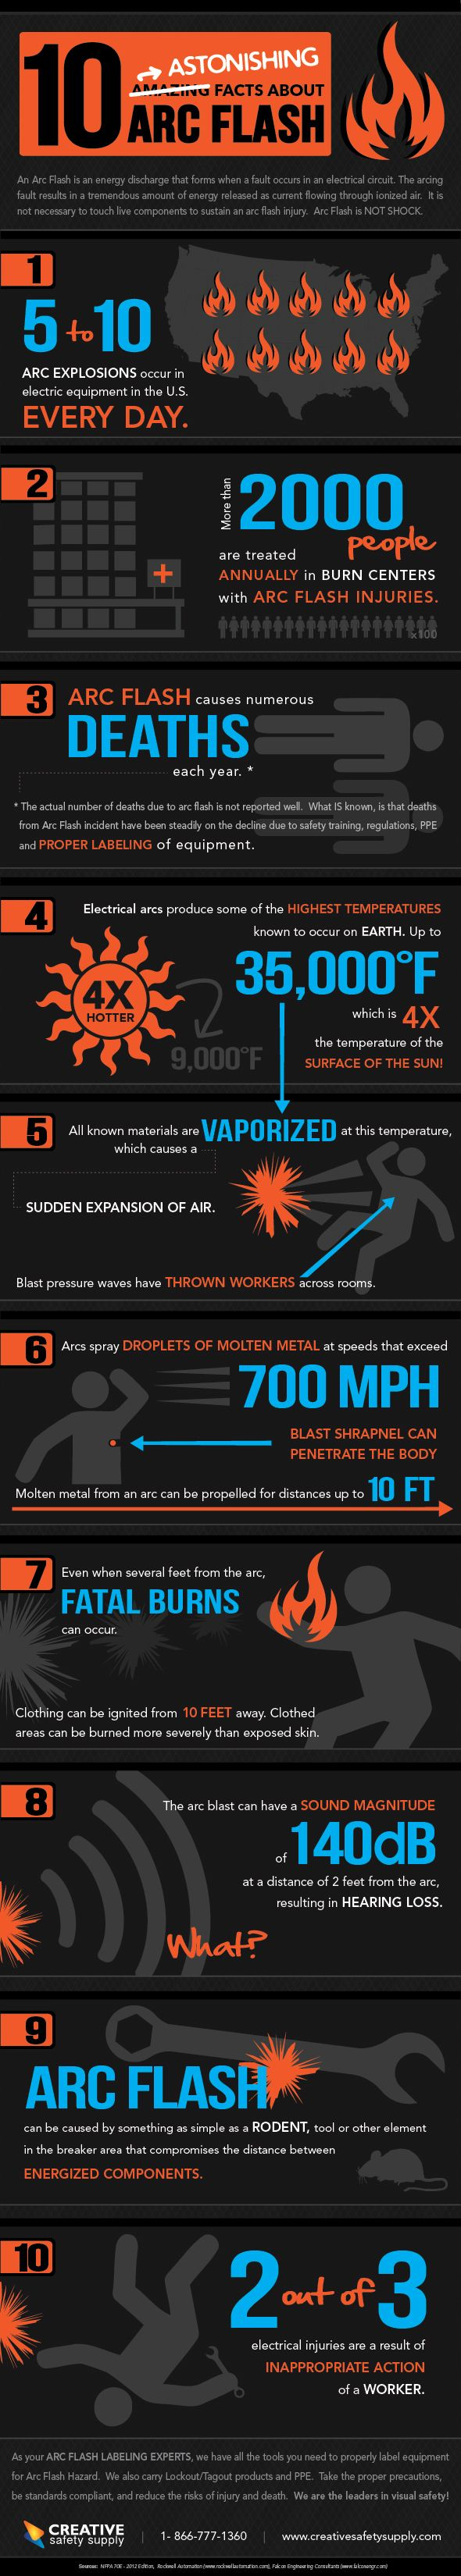 This infographic explains the extreme danger of Arc Flash blasts and explosions. Arc Flash Safety programs can prevent most Arc Flash related injuries